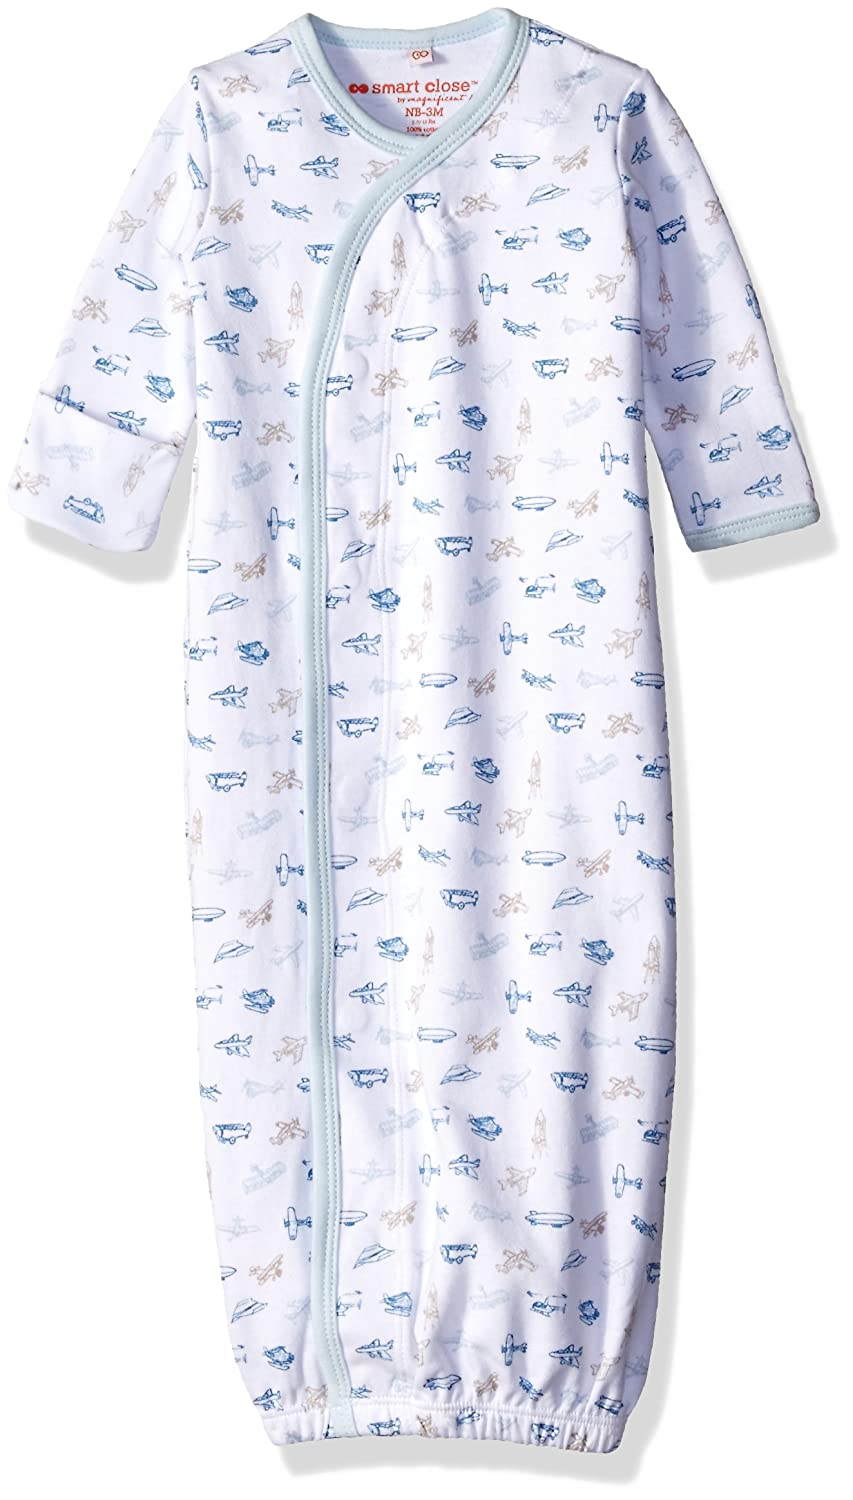 【年中無休】 Magnificent Baby SLEEPWEAR Magnificent ベビーボーイズ SLEEPWEAR New Born-3 Months Months Airplane B01DIWD4EU, GRAMOROUS:da74a346 --- a0267596.xsph.ru